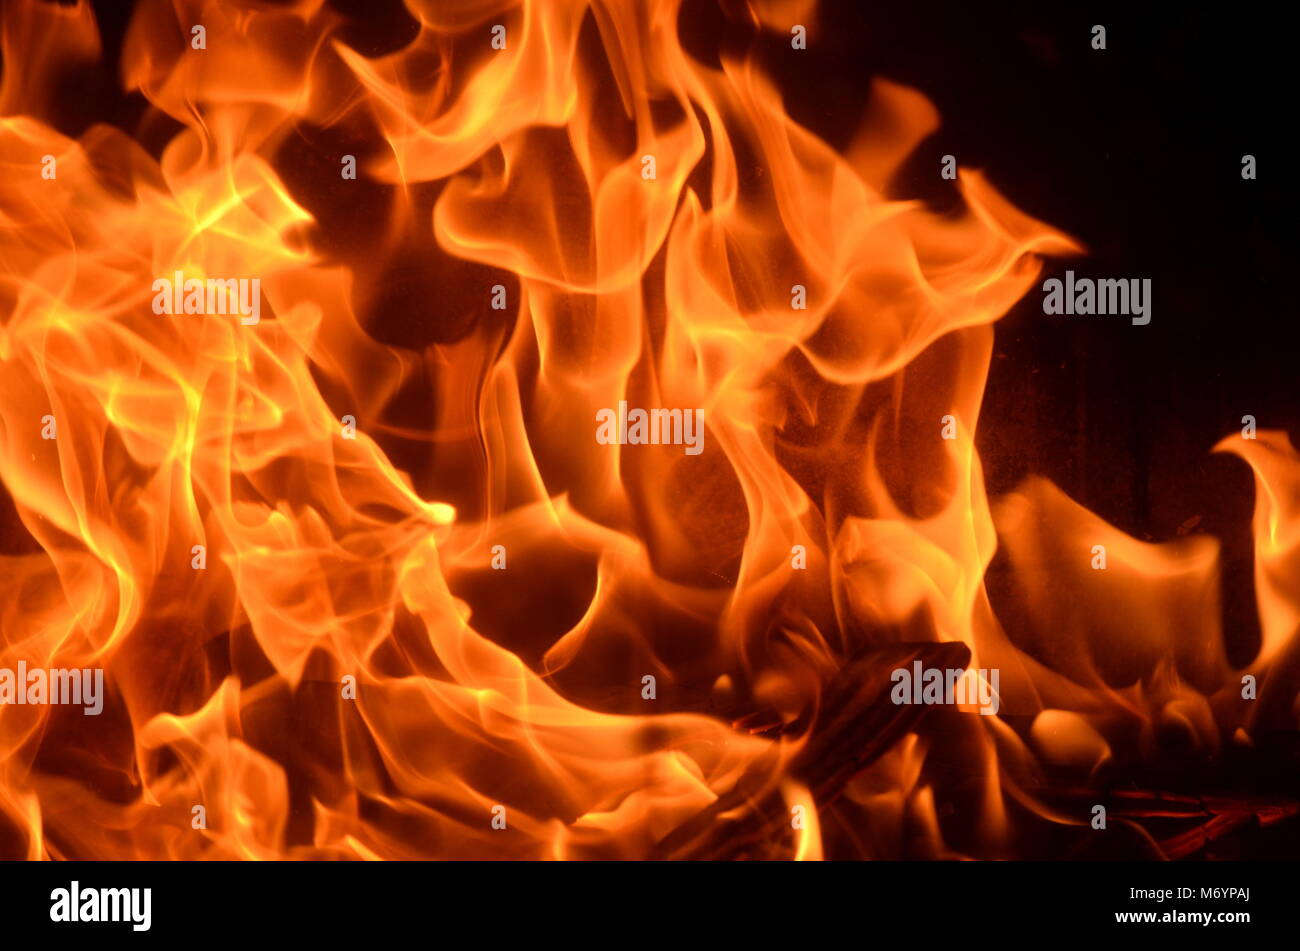 Close up of burning fire with blazing red, orange and yellow flames background. Fire hazard, fire safety, arson, - Stock Image